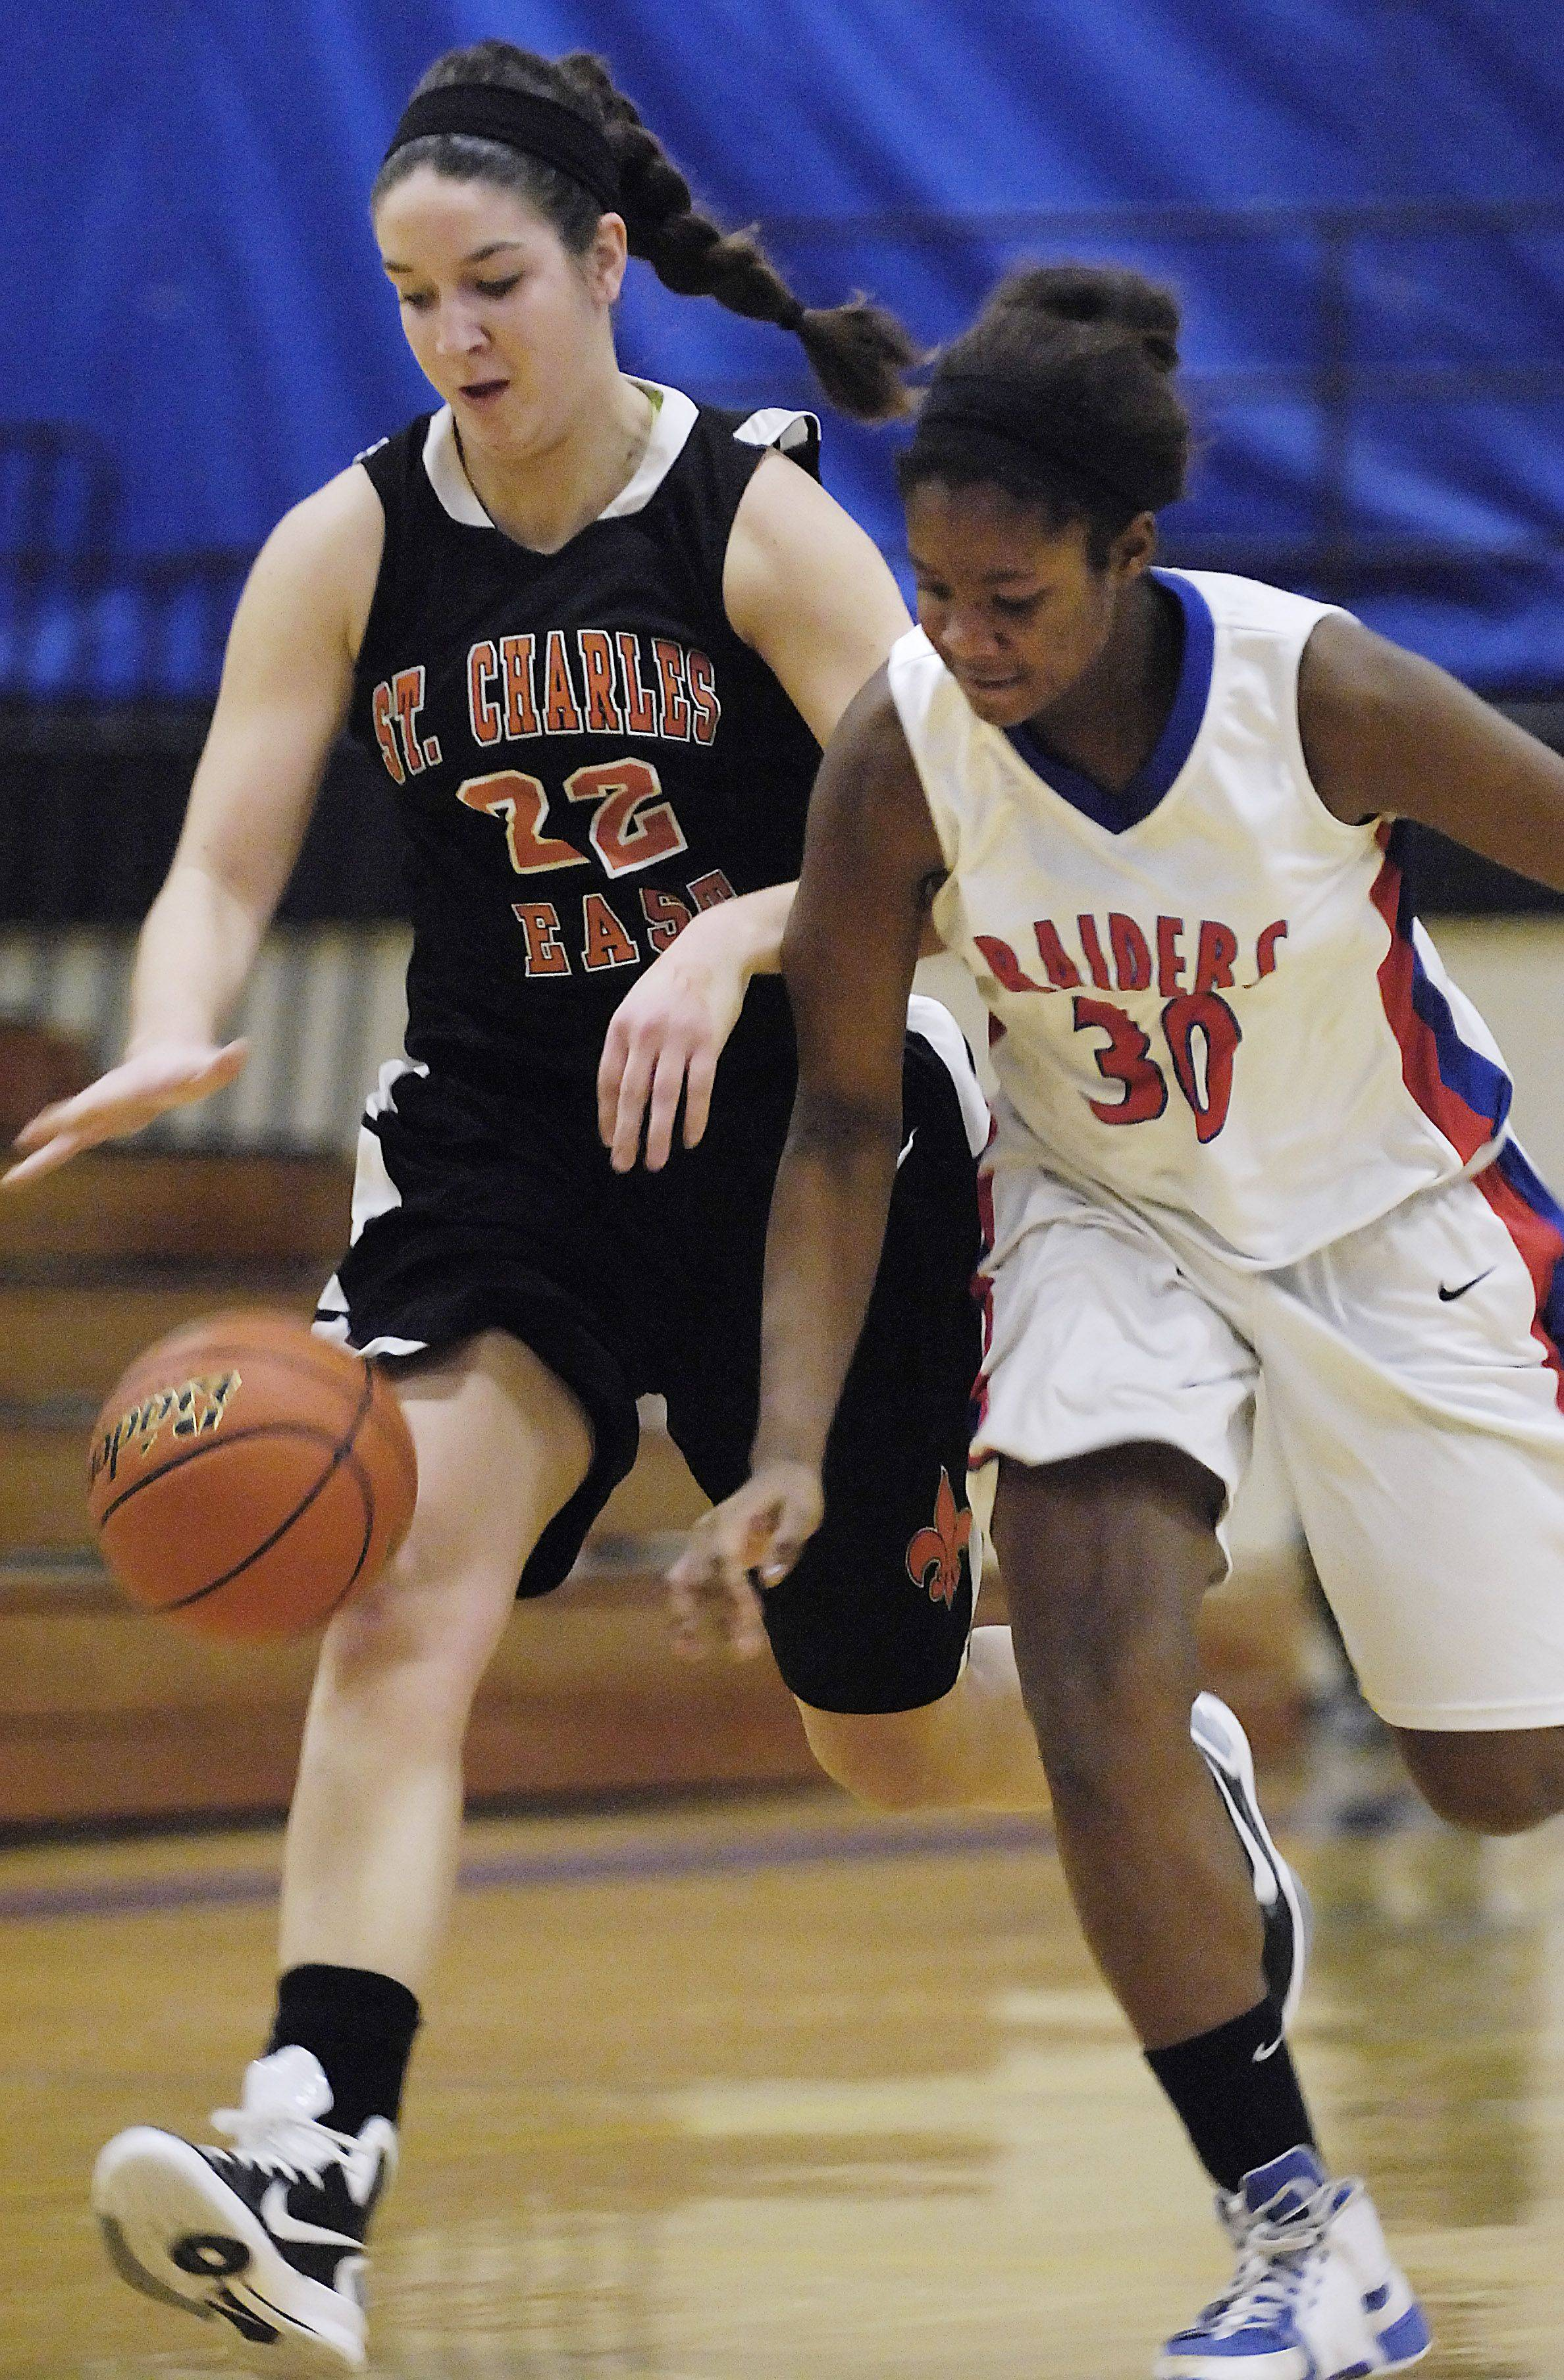 St. Charles East's Dani Asquini and Glenbard South's Hannah Davey chase a loose ball.